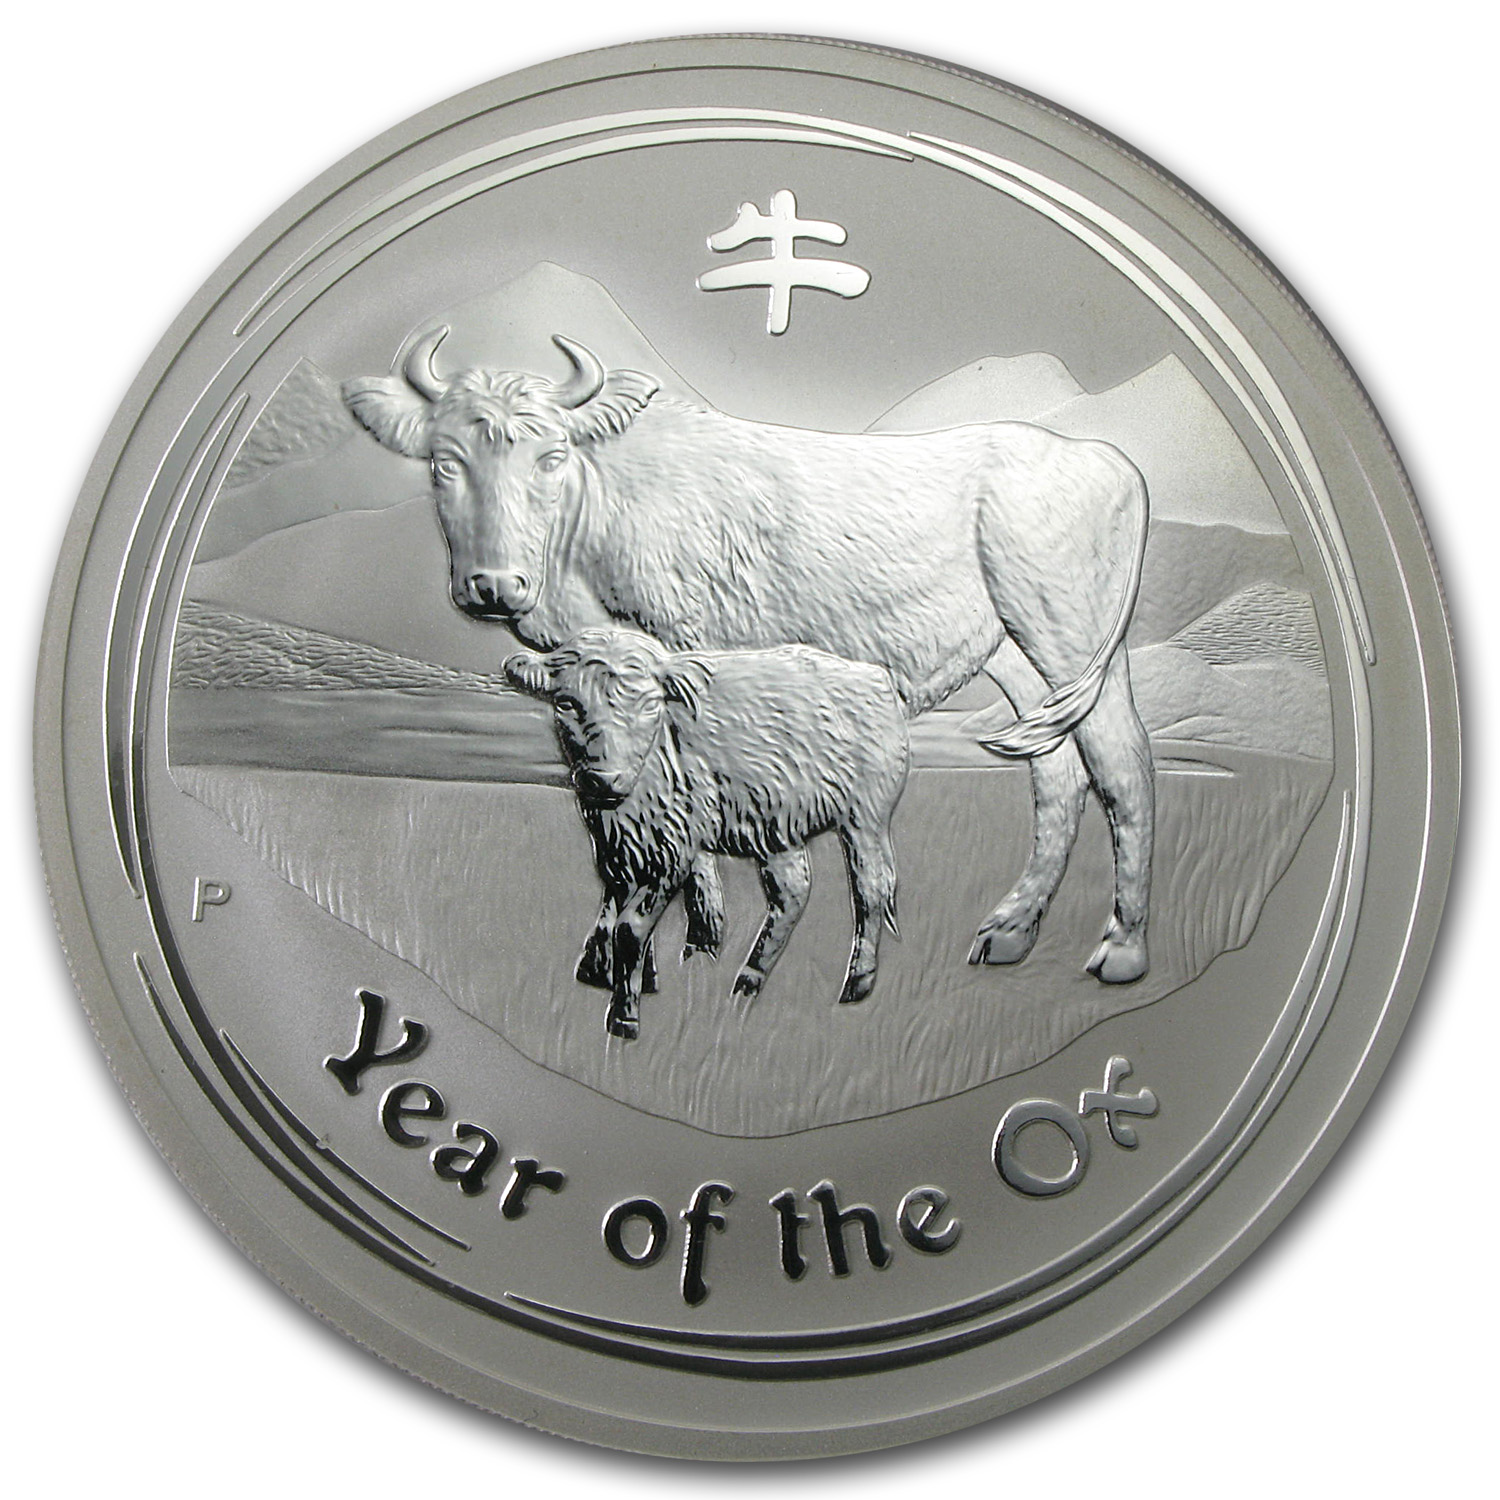 2009 10 oz Silver Australian Year of the Ox Coin SII (Spots)